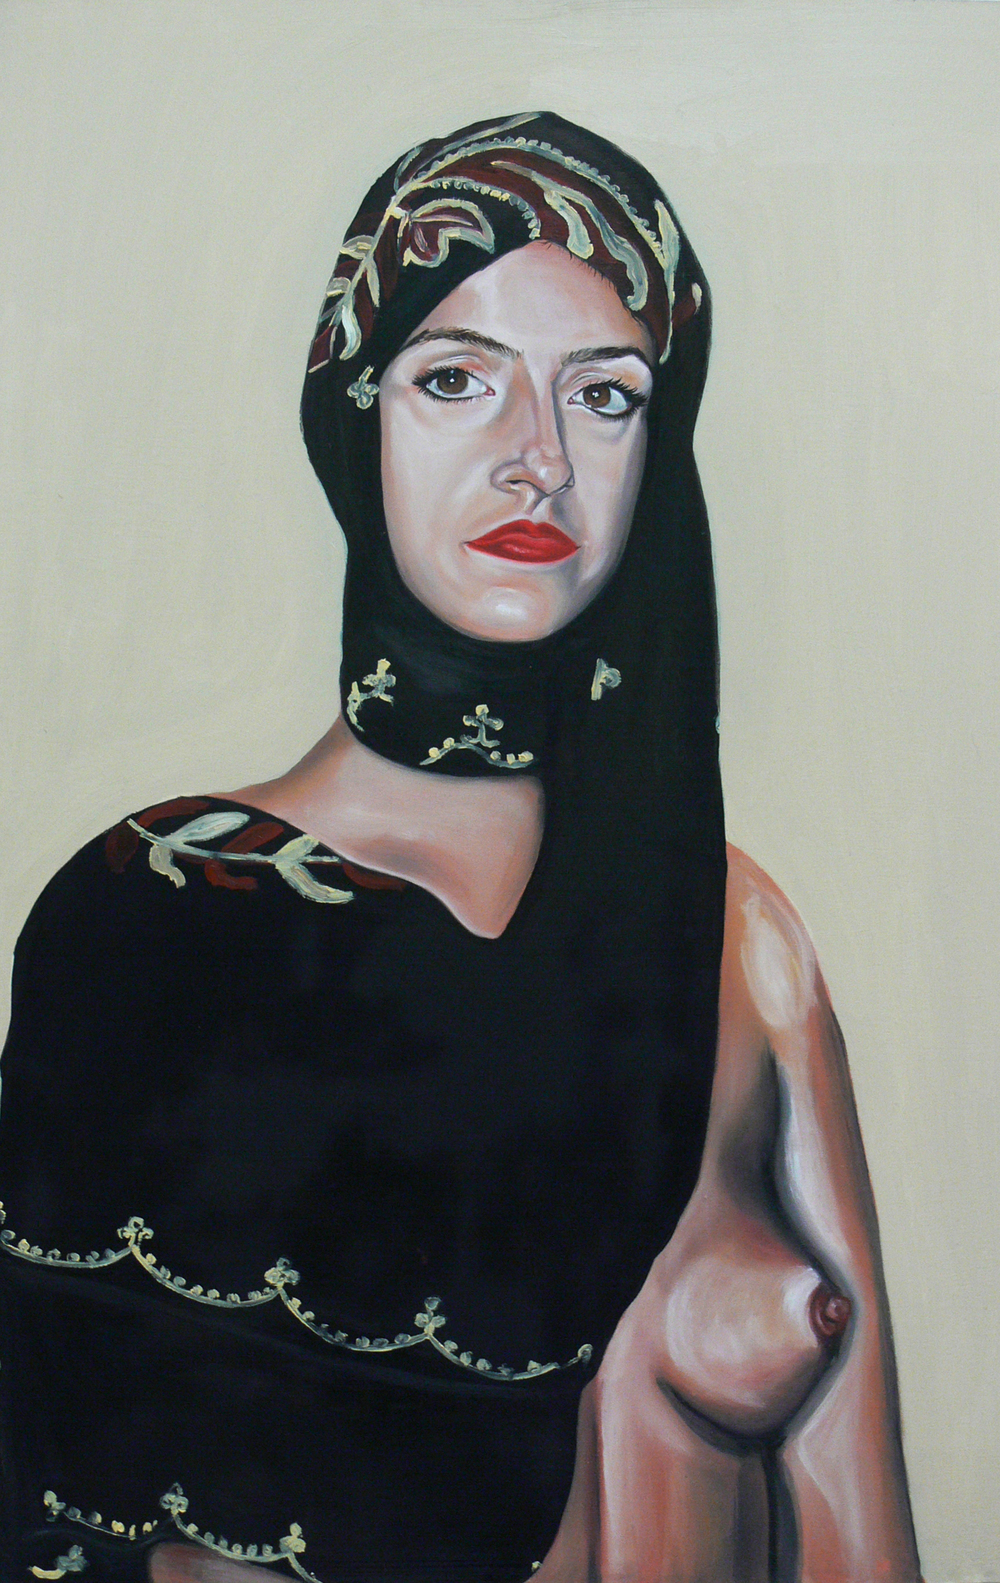 Self-Portrait with my Mother's Headscarf and Breast of Kate Moss